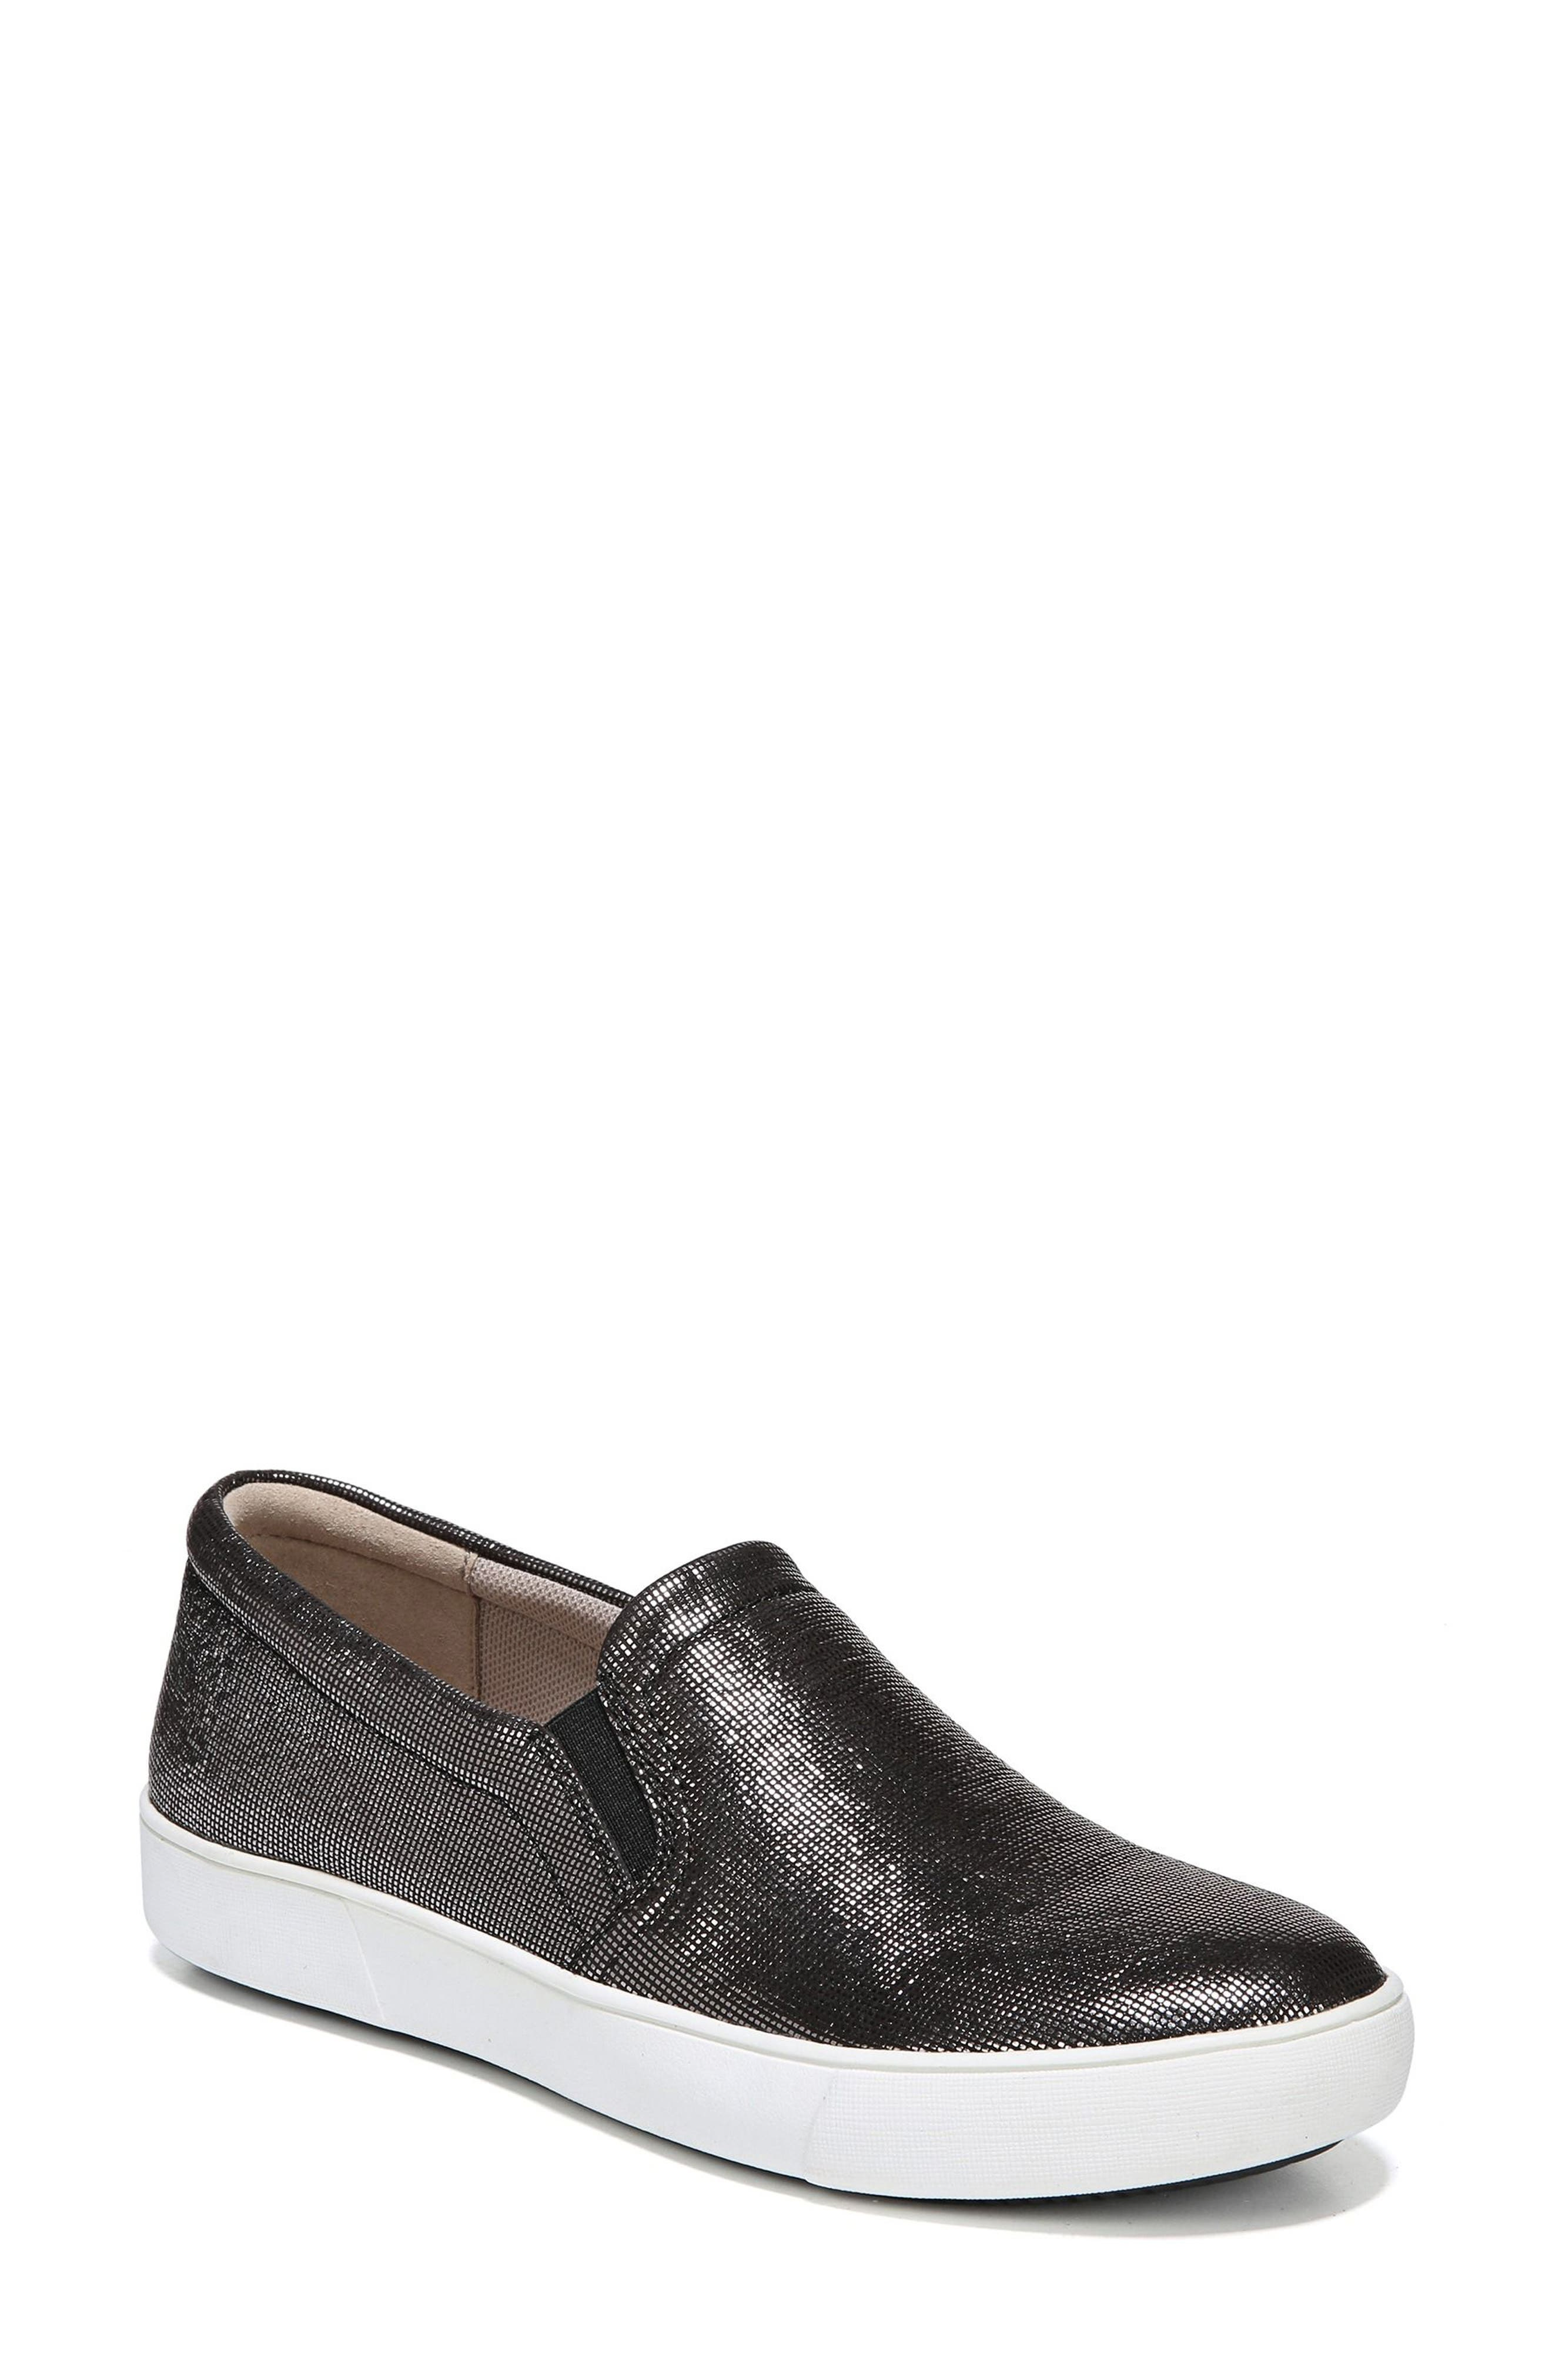 Marianne Slip-On Sneaker,                         Main,                         color, DEEP SILVER PRINTED LEATHER